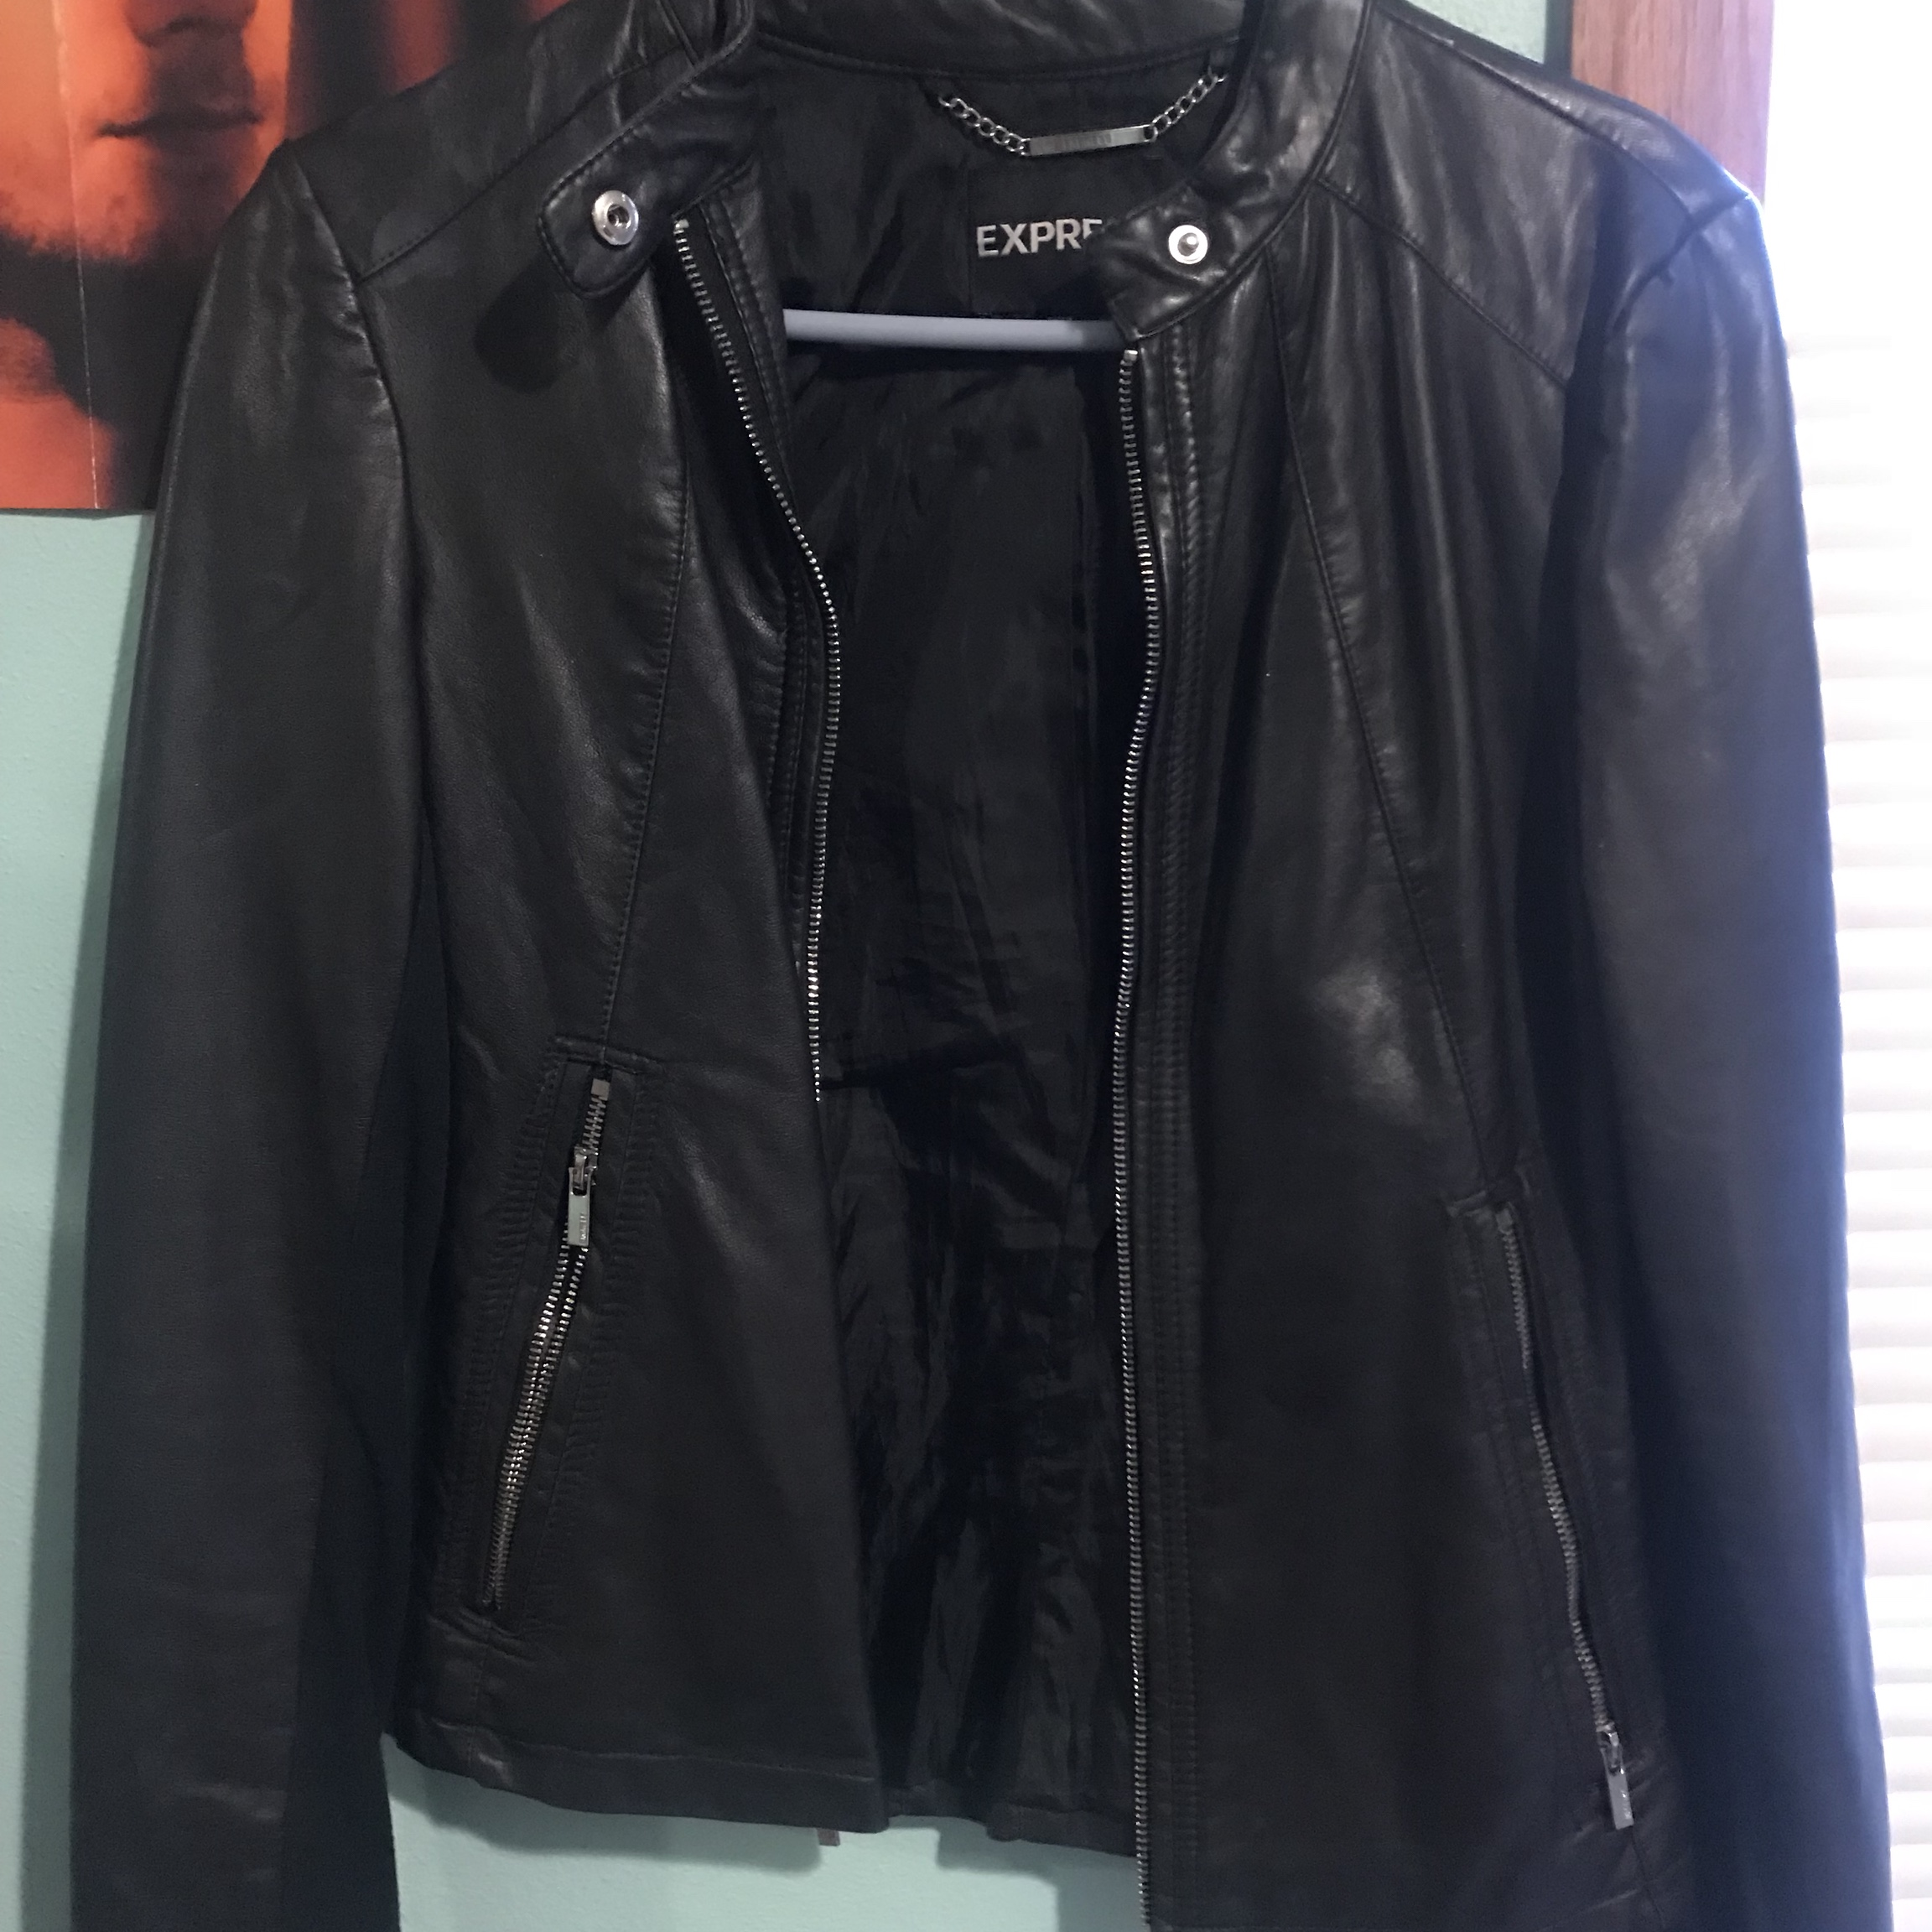 6d74a3e95 Black express faux leather jacket size small/ 4 in... - Depop